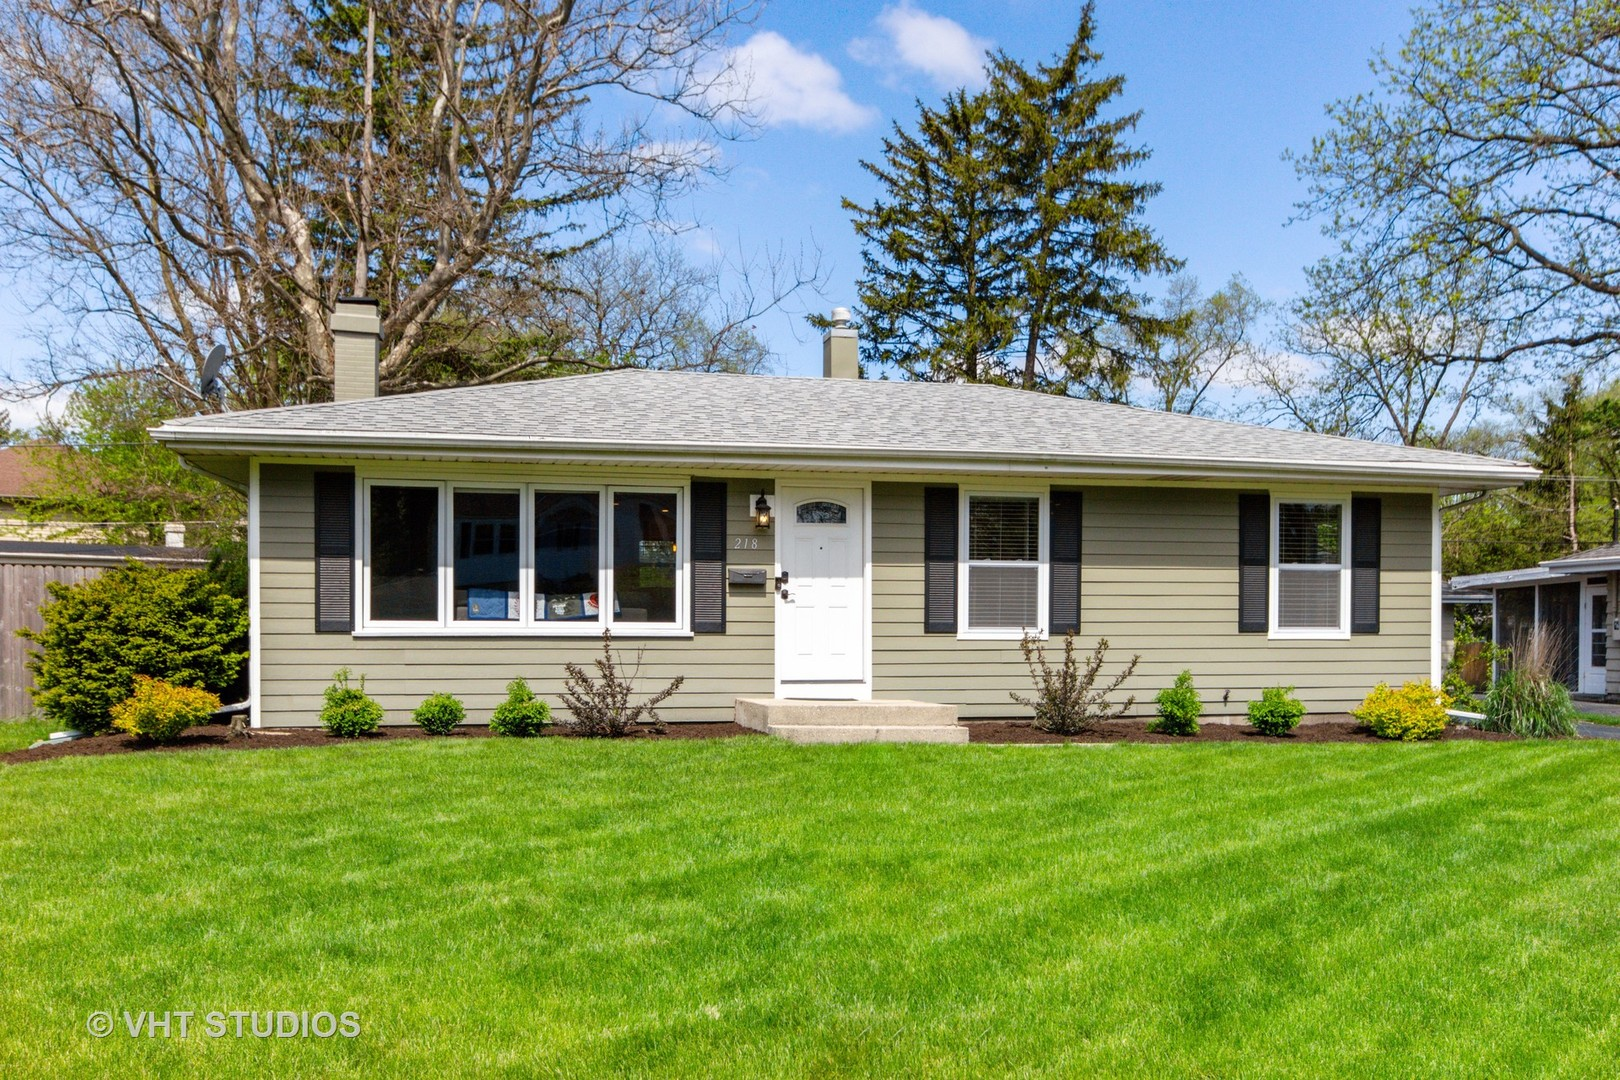 218 South Lorraine Road, Wheaton in Du Page County, IL 60187 Home for Sale